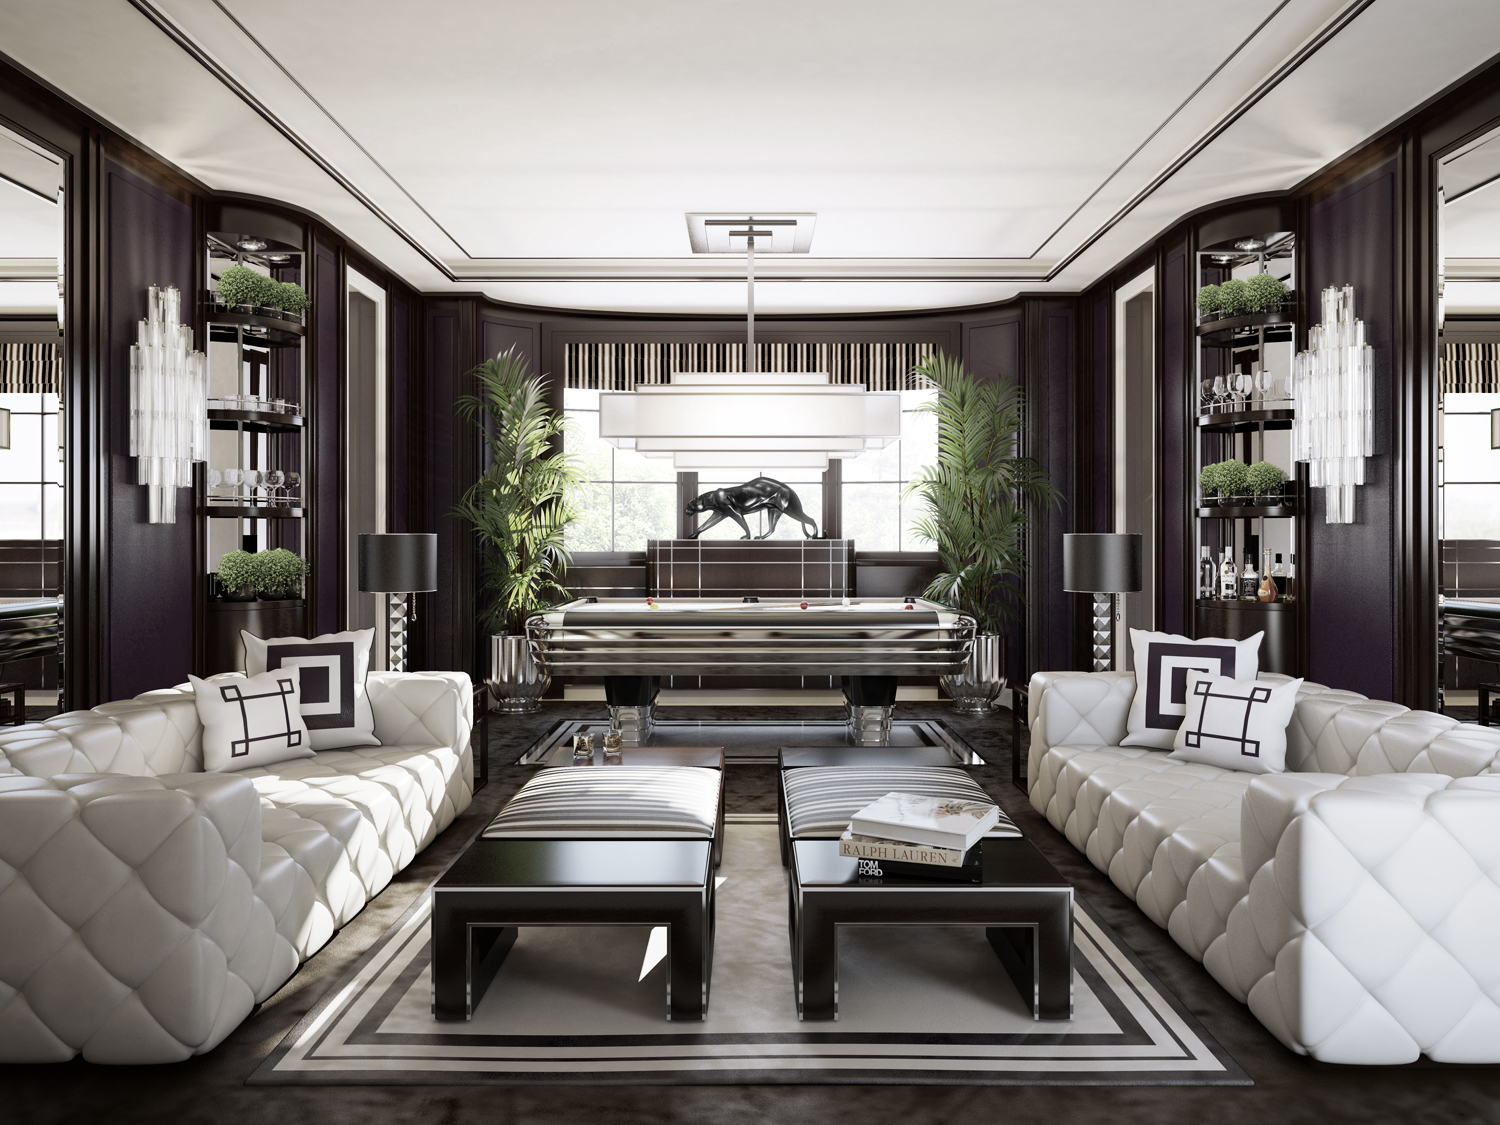 Interior cgi architectural visualisation - Luxury interior ...